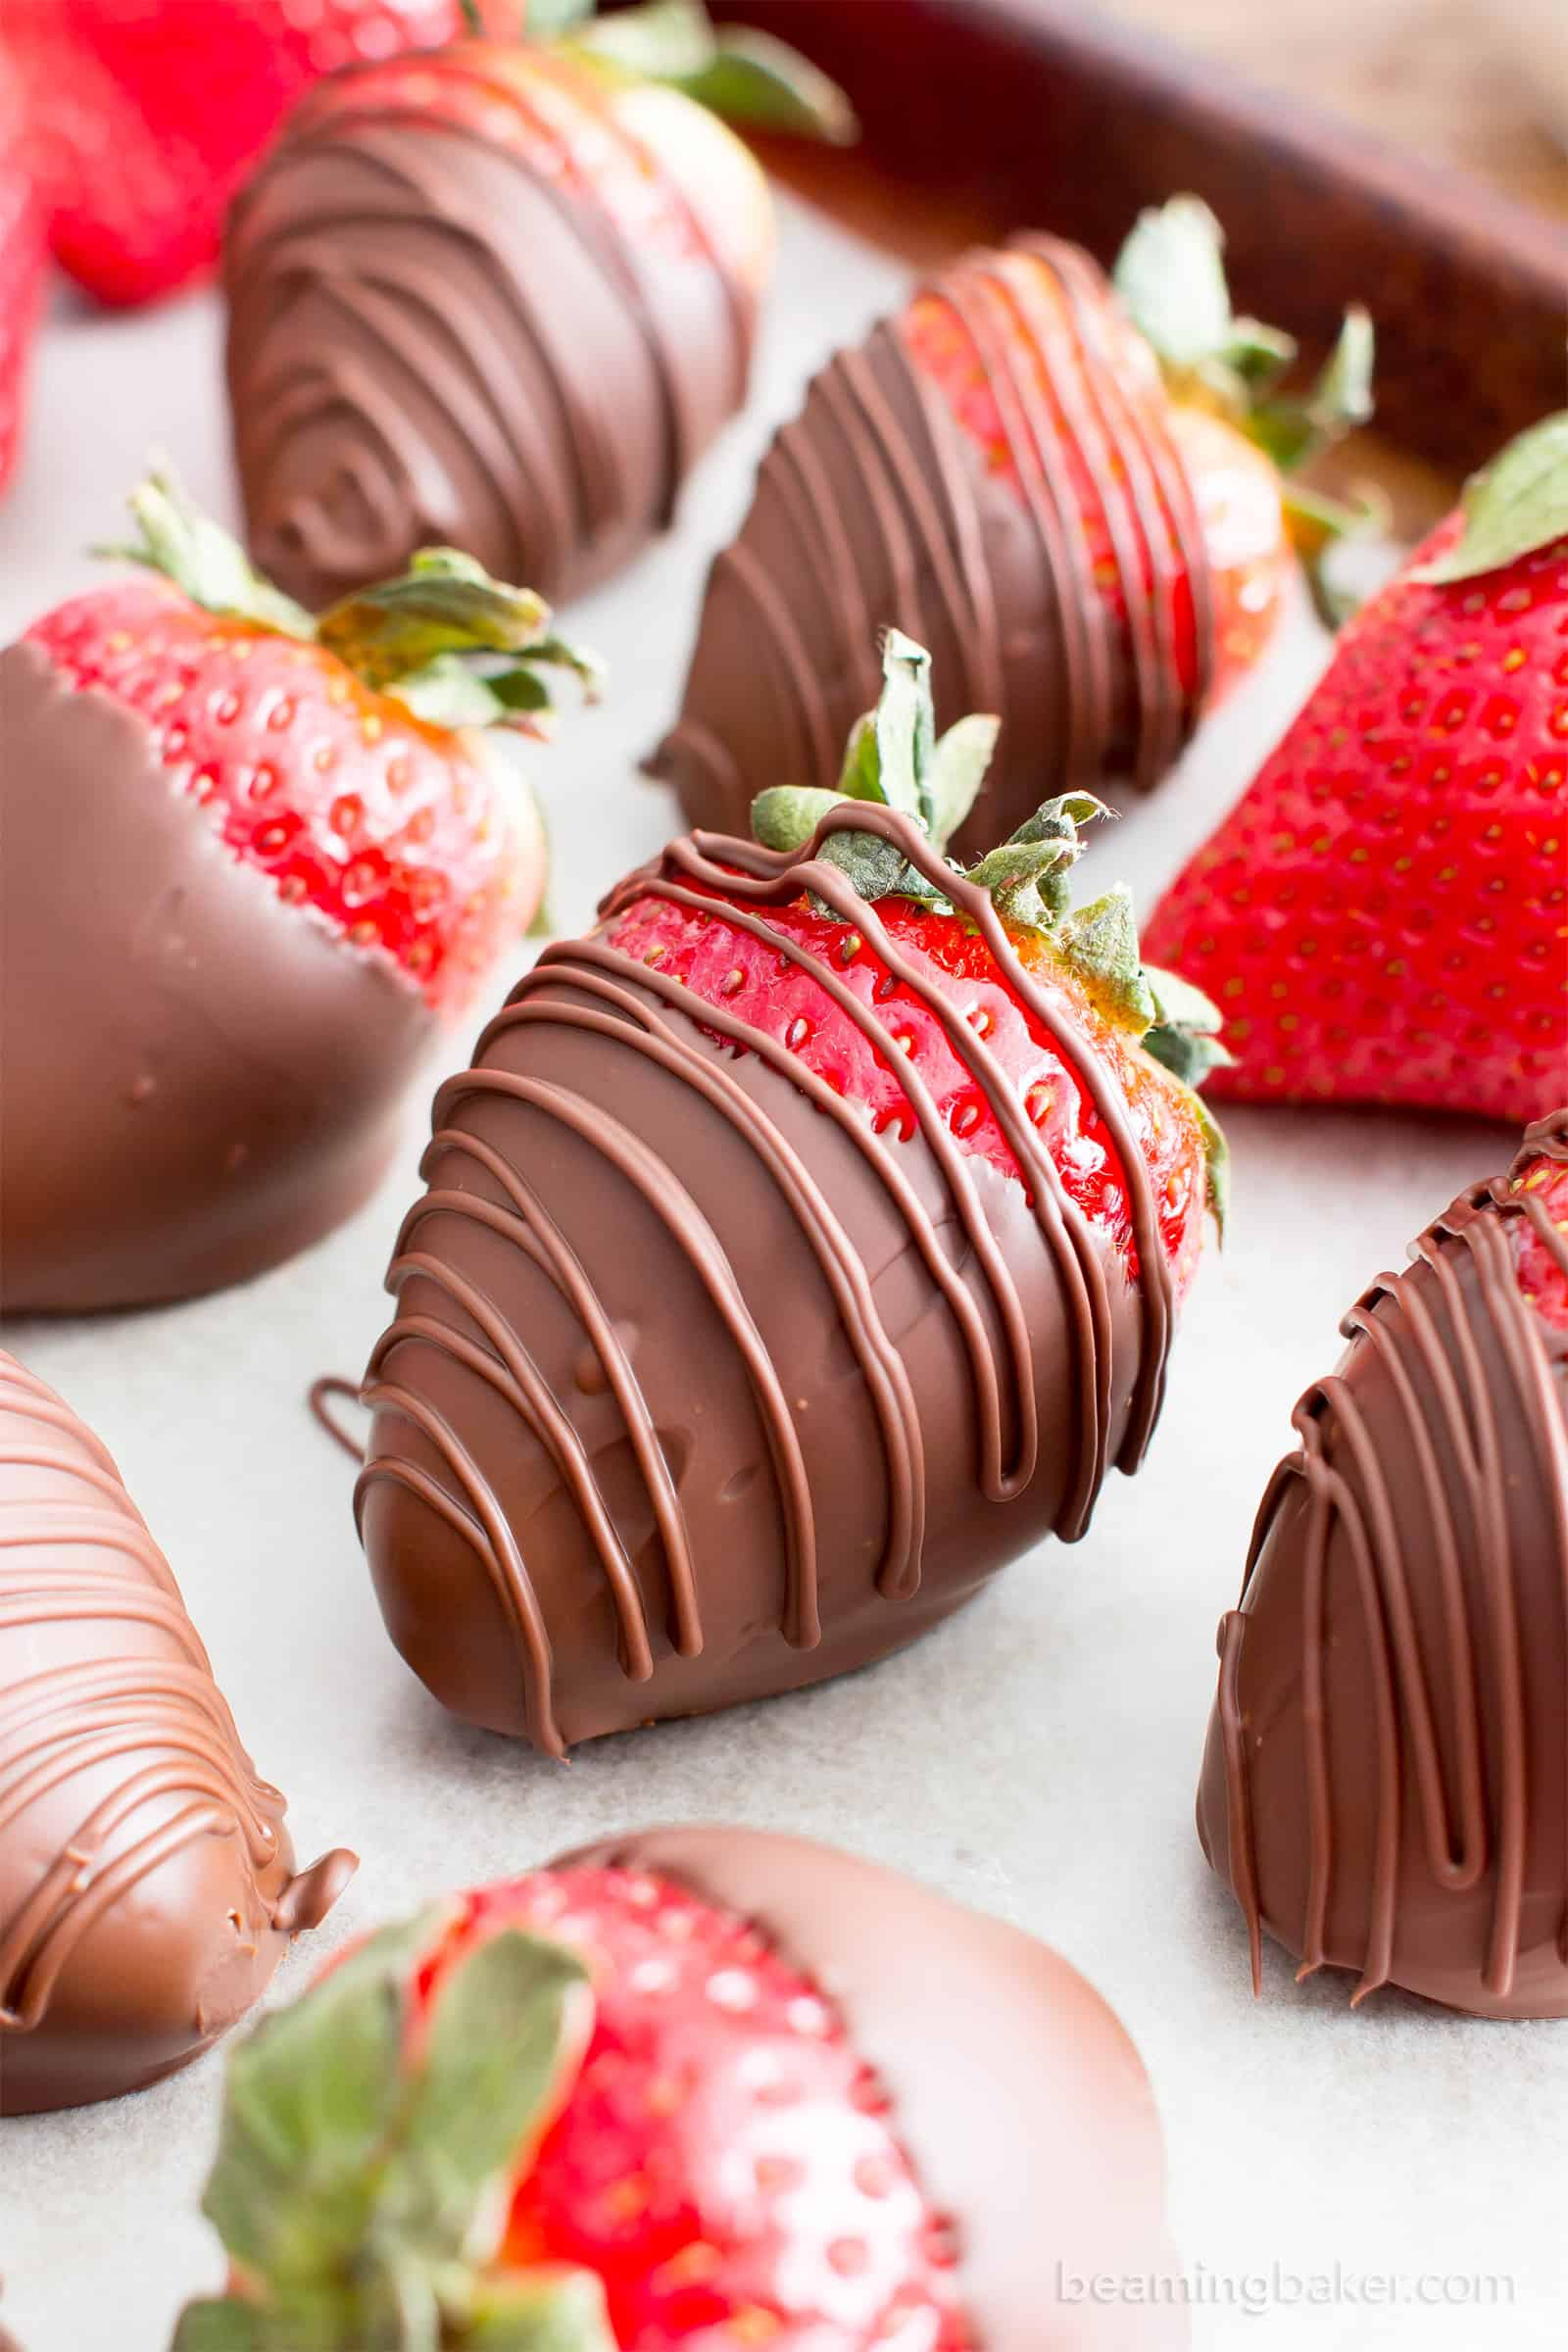 Pictures Of Chocolate Covered Strawberries